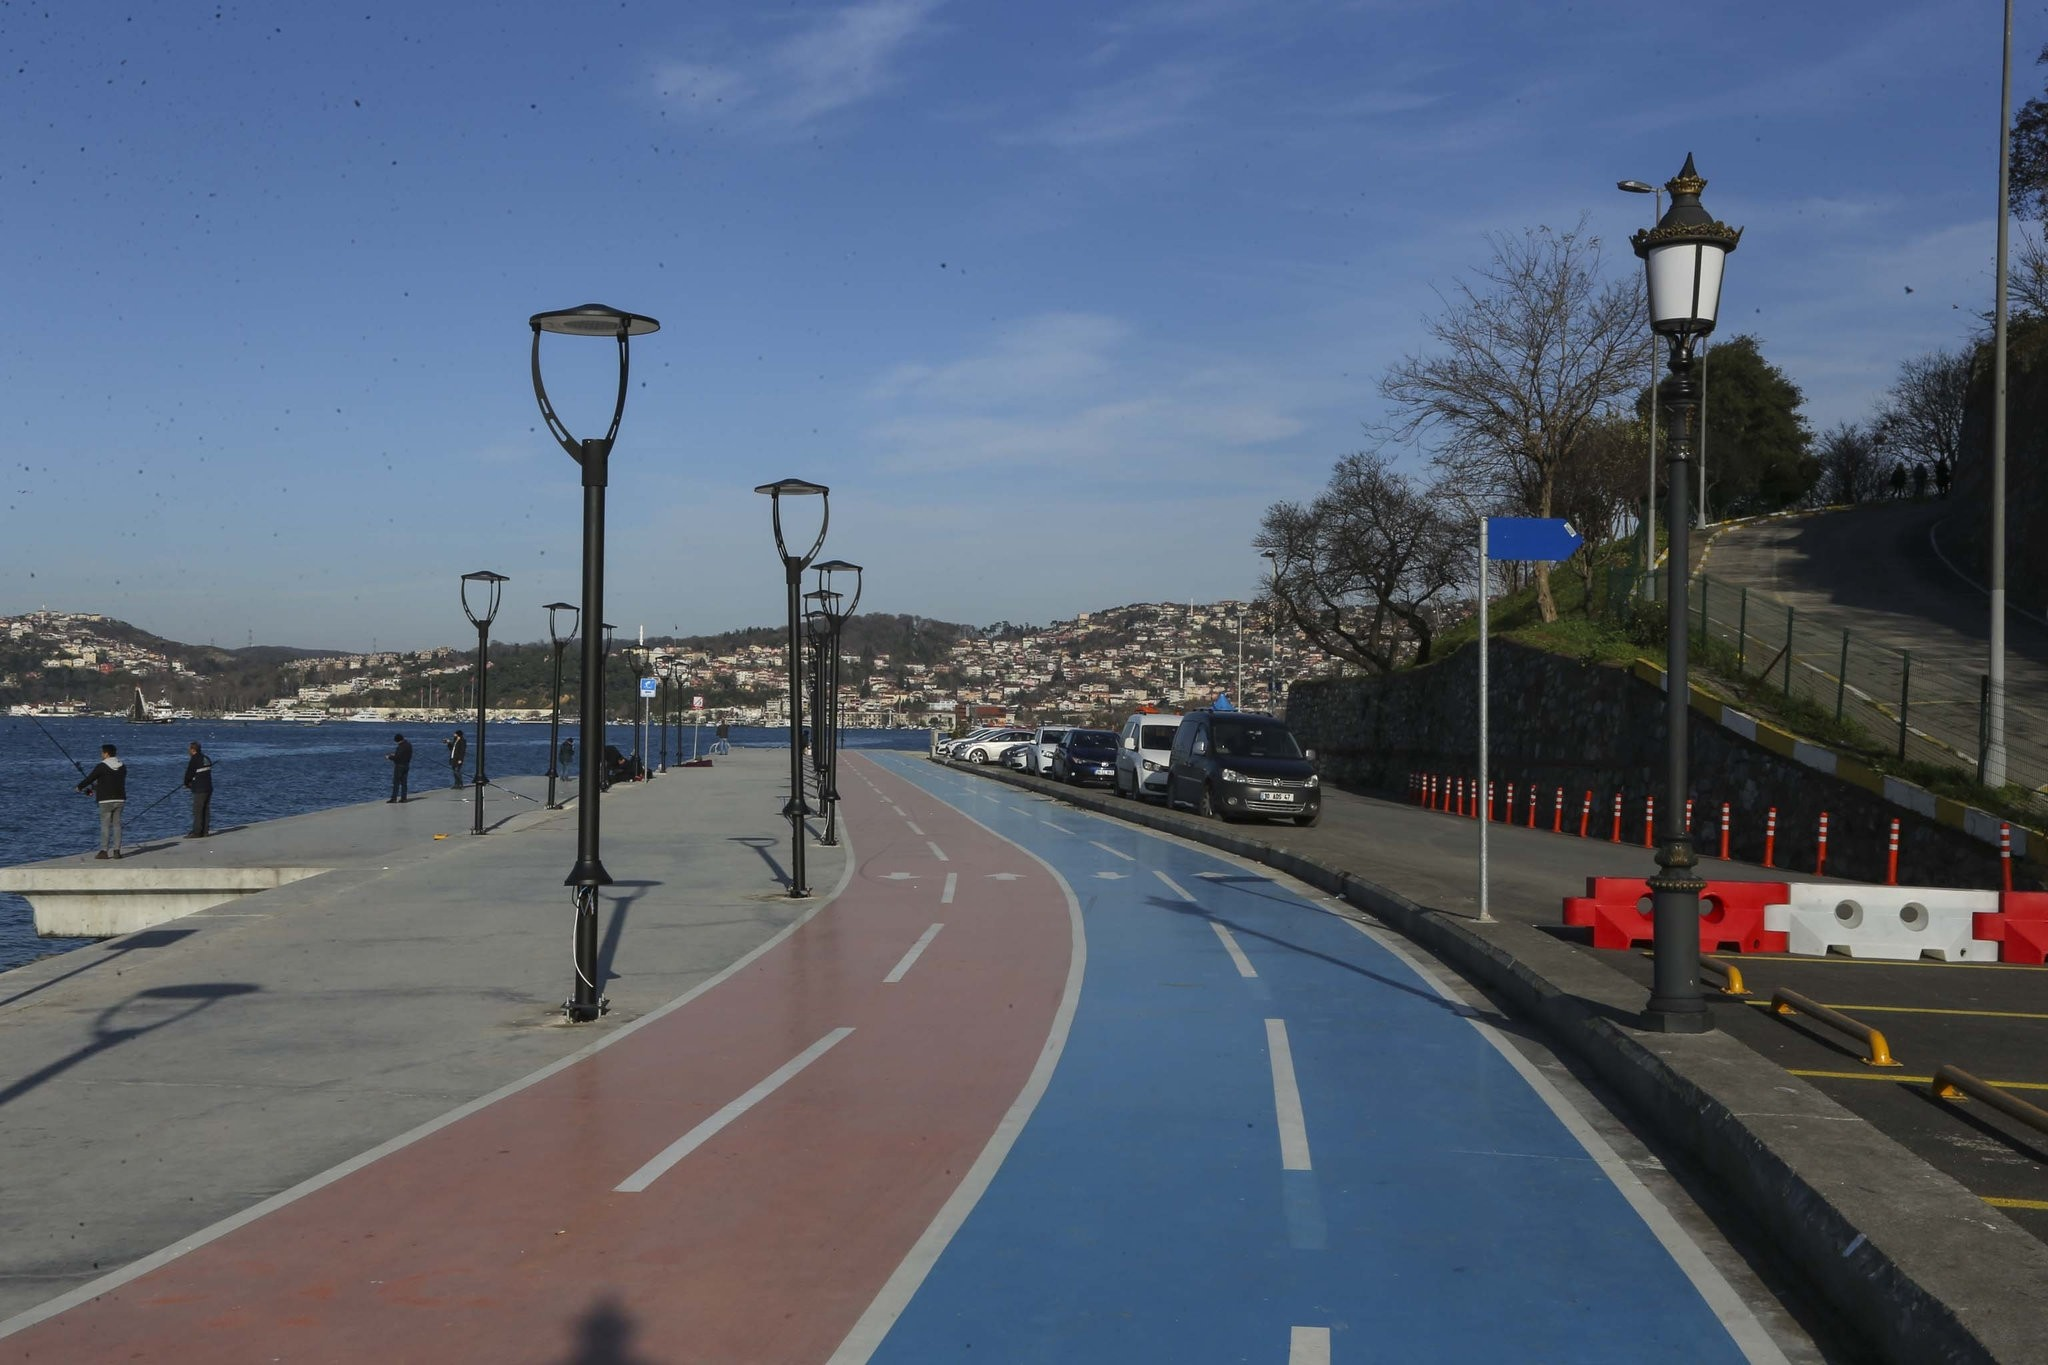 A bicycle lane stretching from Istanbulu2019s Kanlu0131ca to Pau015fabahu00e7e districts. Turkey plans to build a 3,000-kilometer bike lane network by 2023.